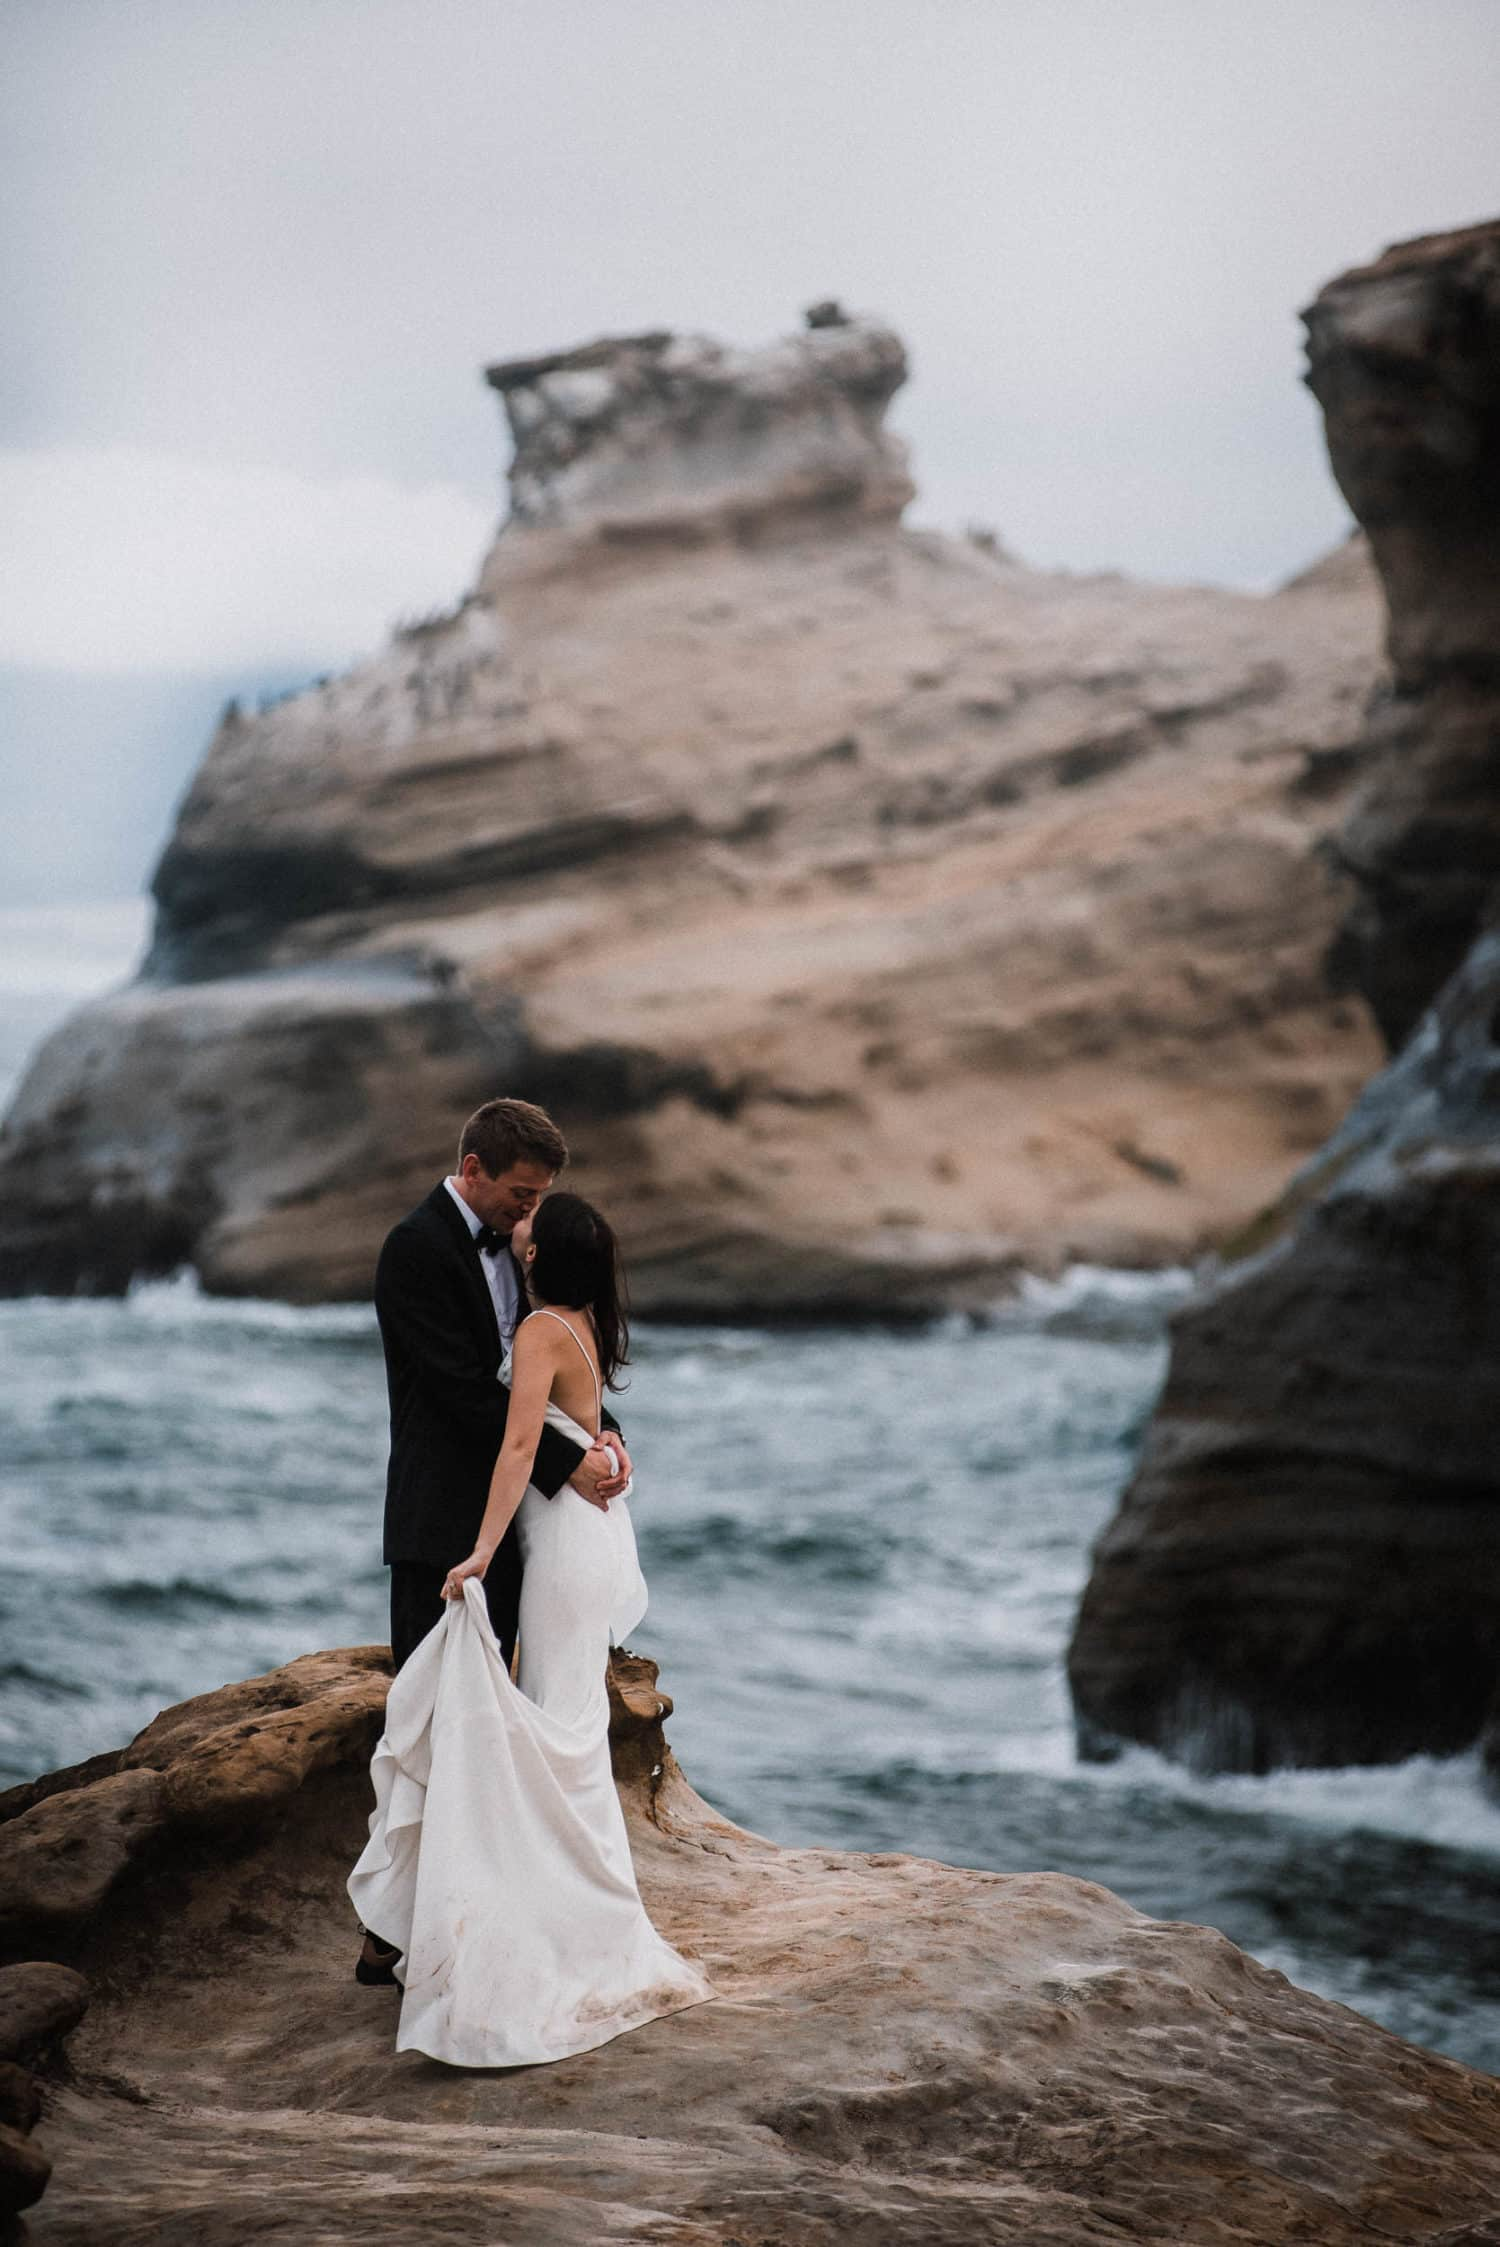 Outdoor Wedding and Adventurous Elopement Photographers, The Foxes Photography.